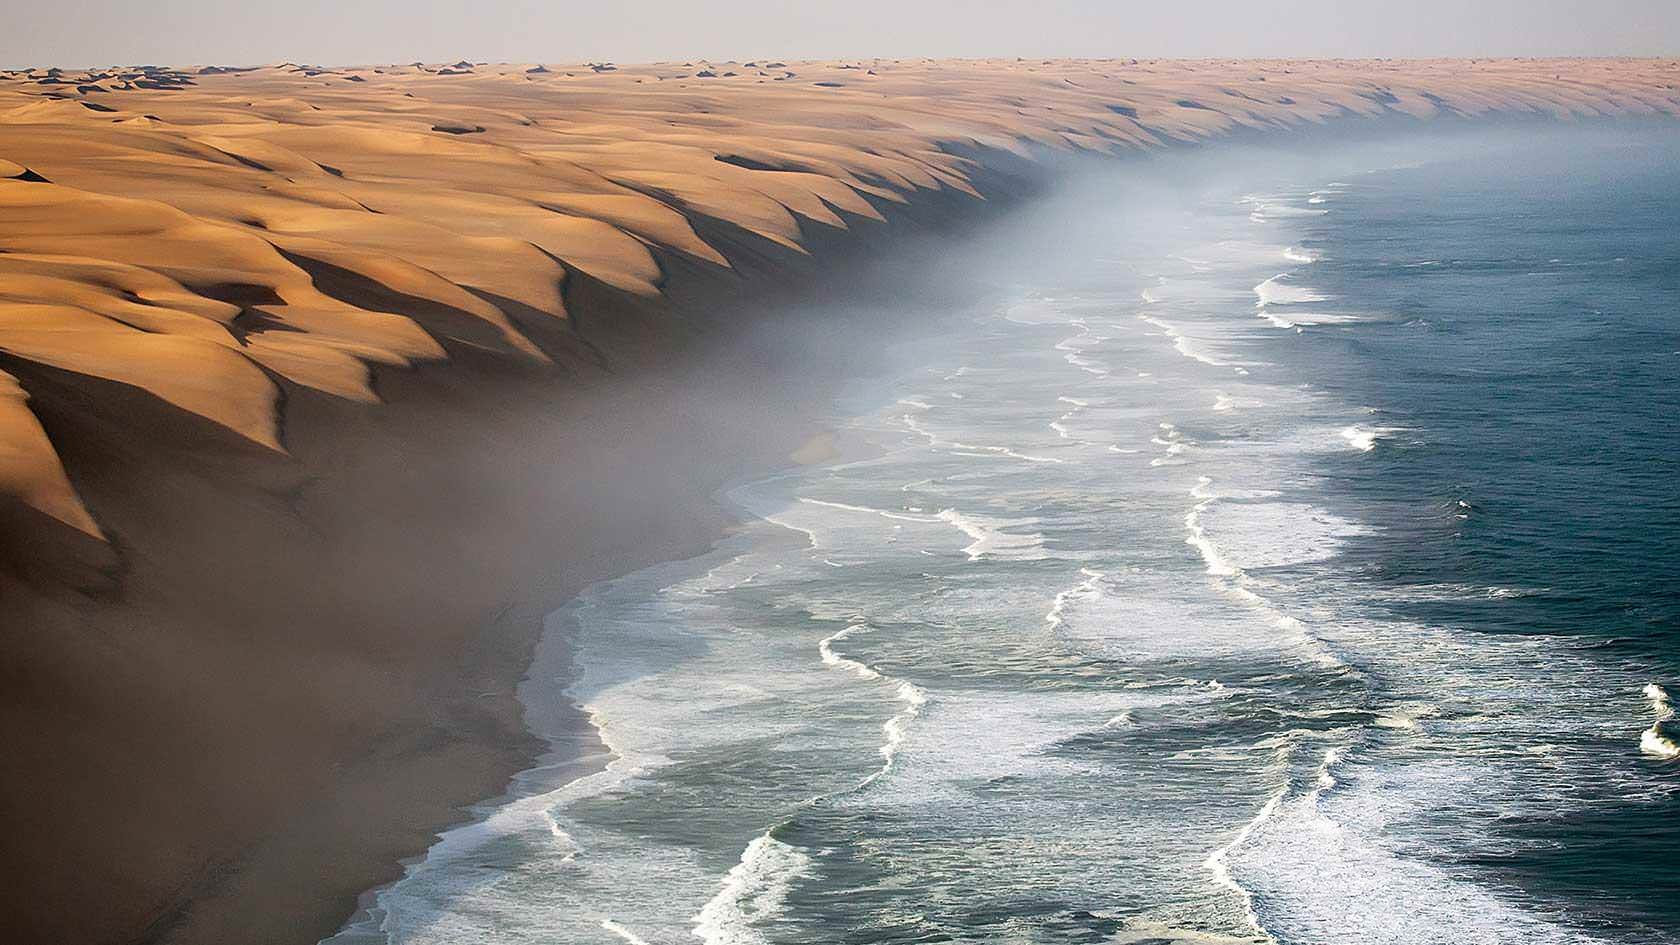 5 - Where the desert meets the ocean